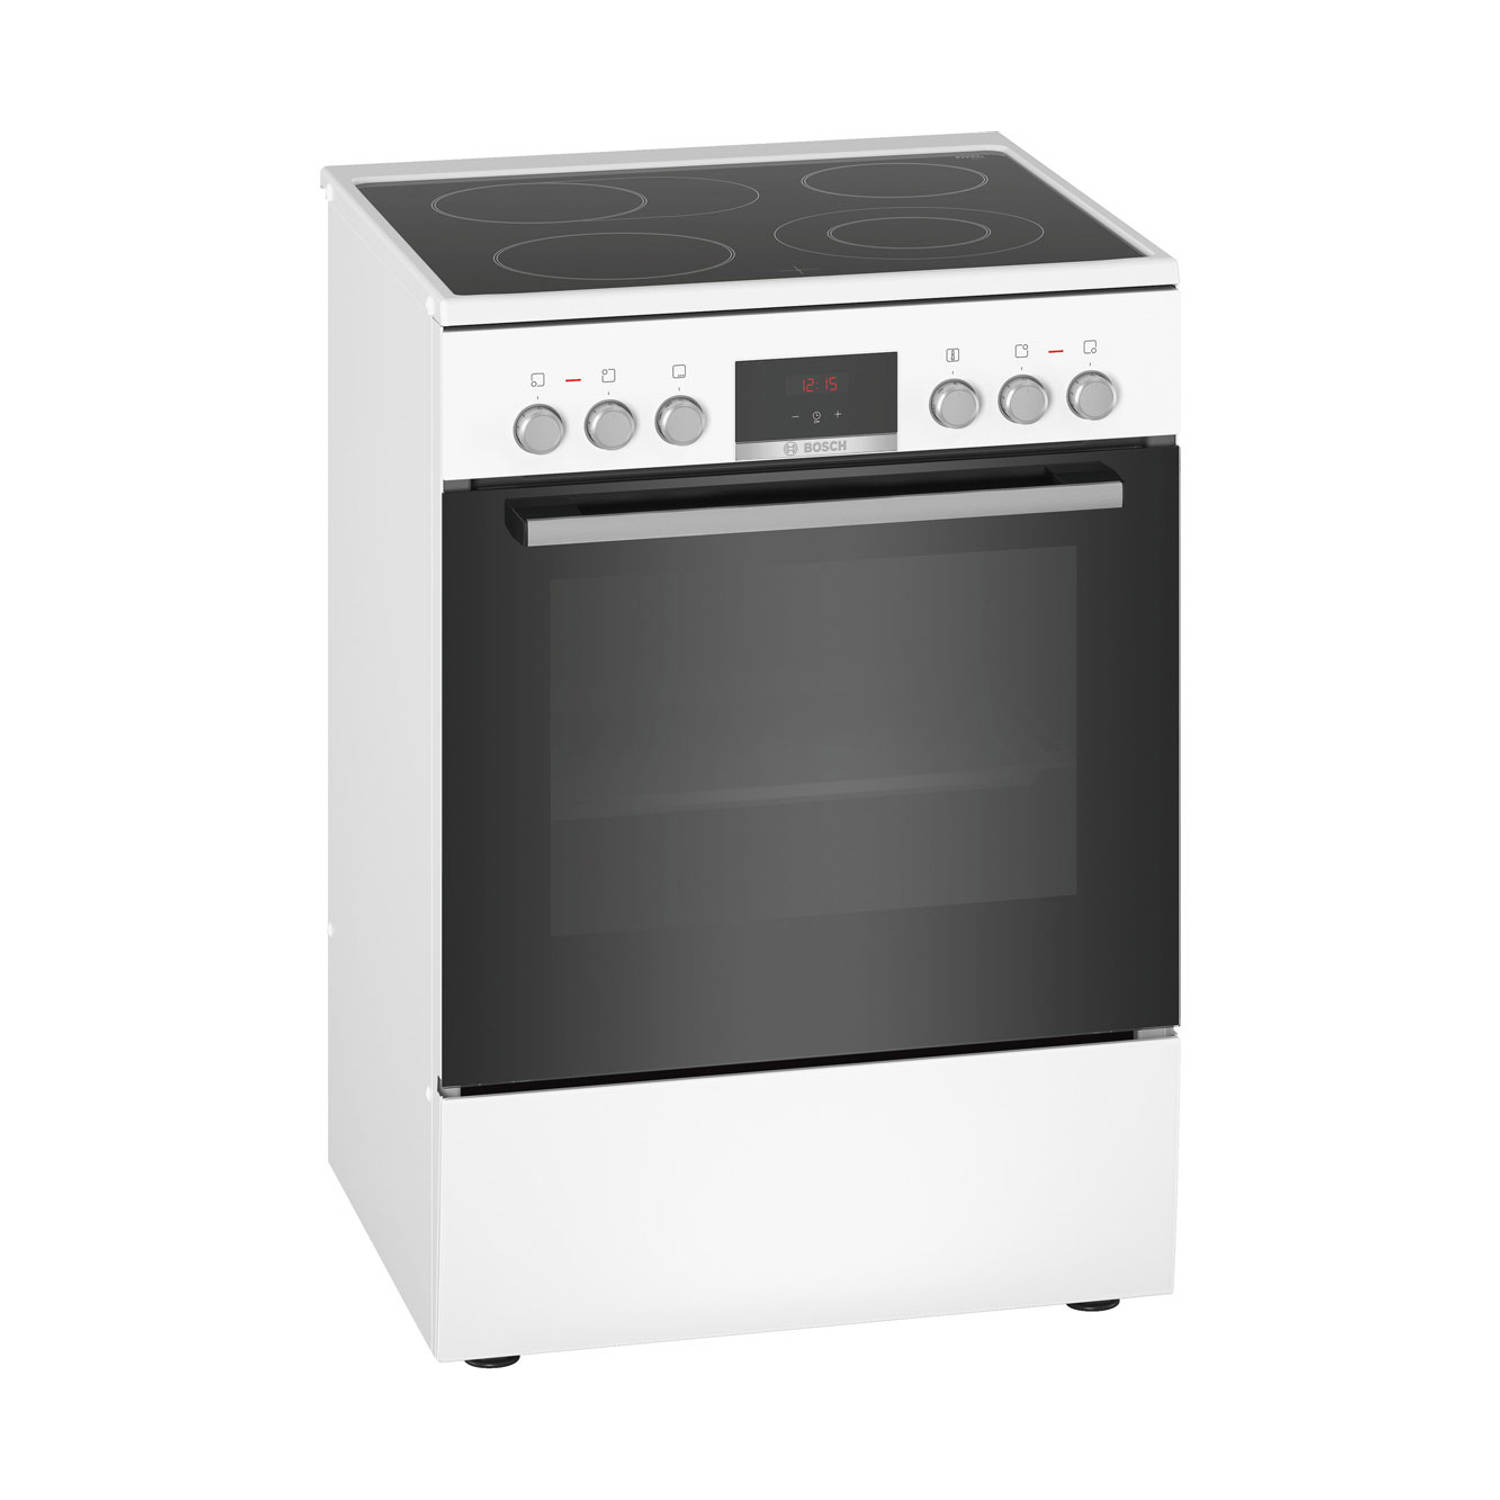 Bosch Serie 4 HKR39C220 fornuizen - Wit